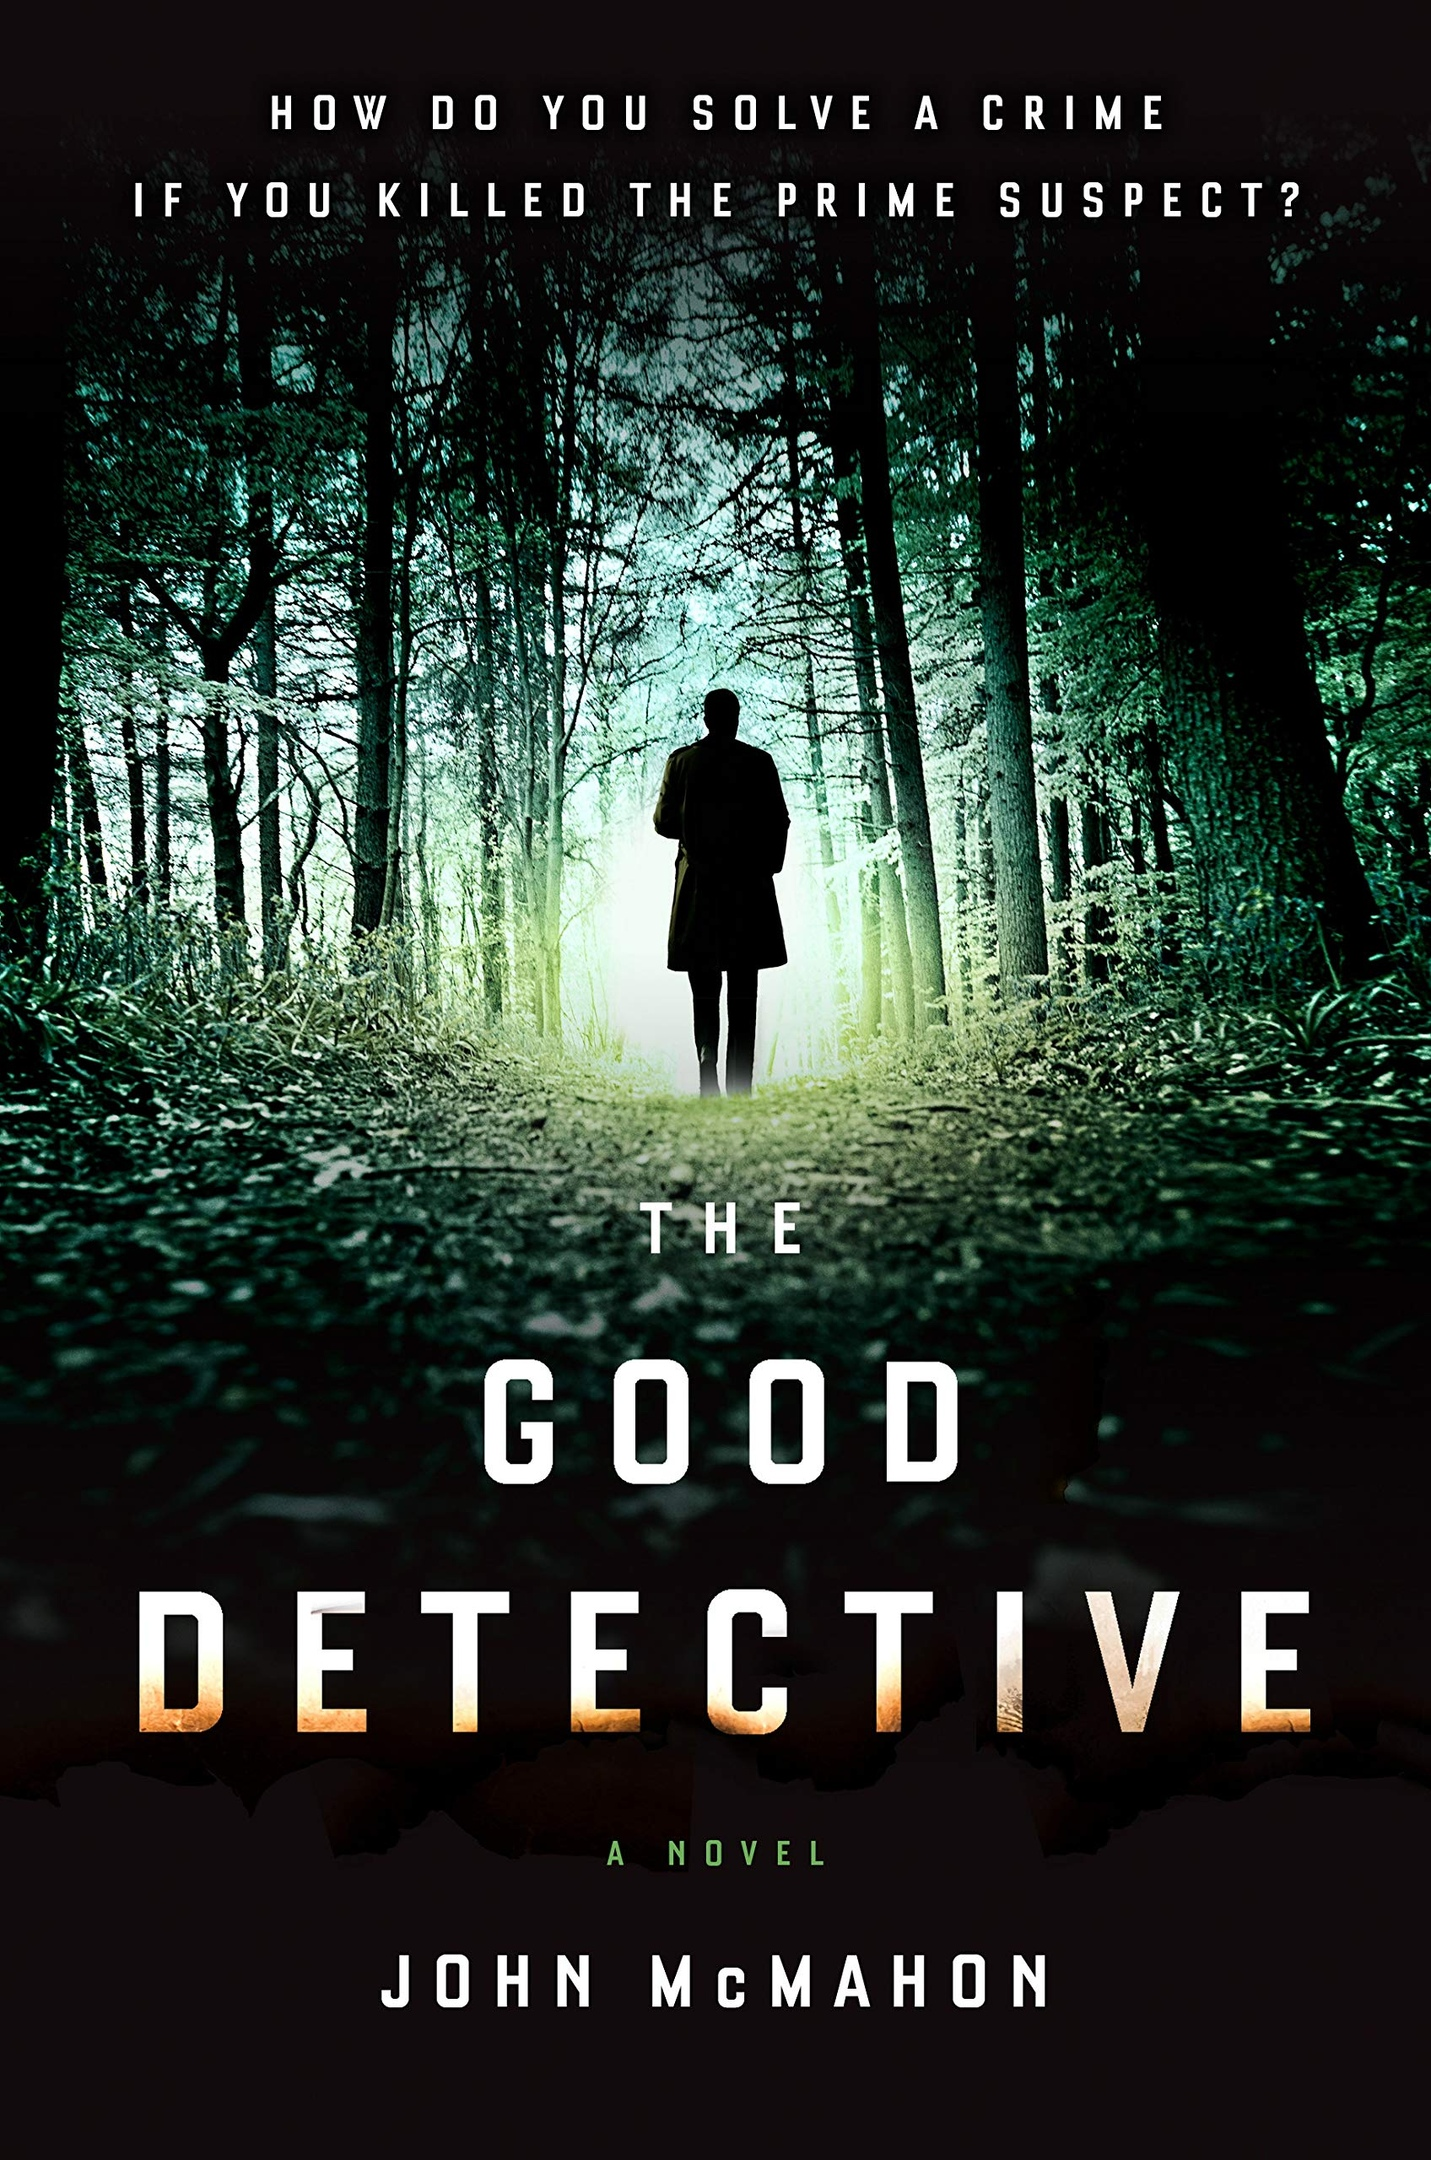 John McMahon – The Good Detective Genre: